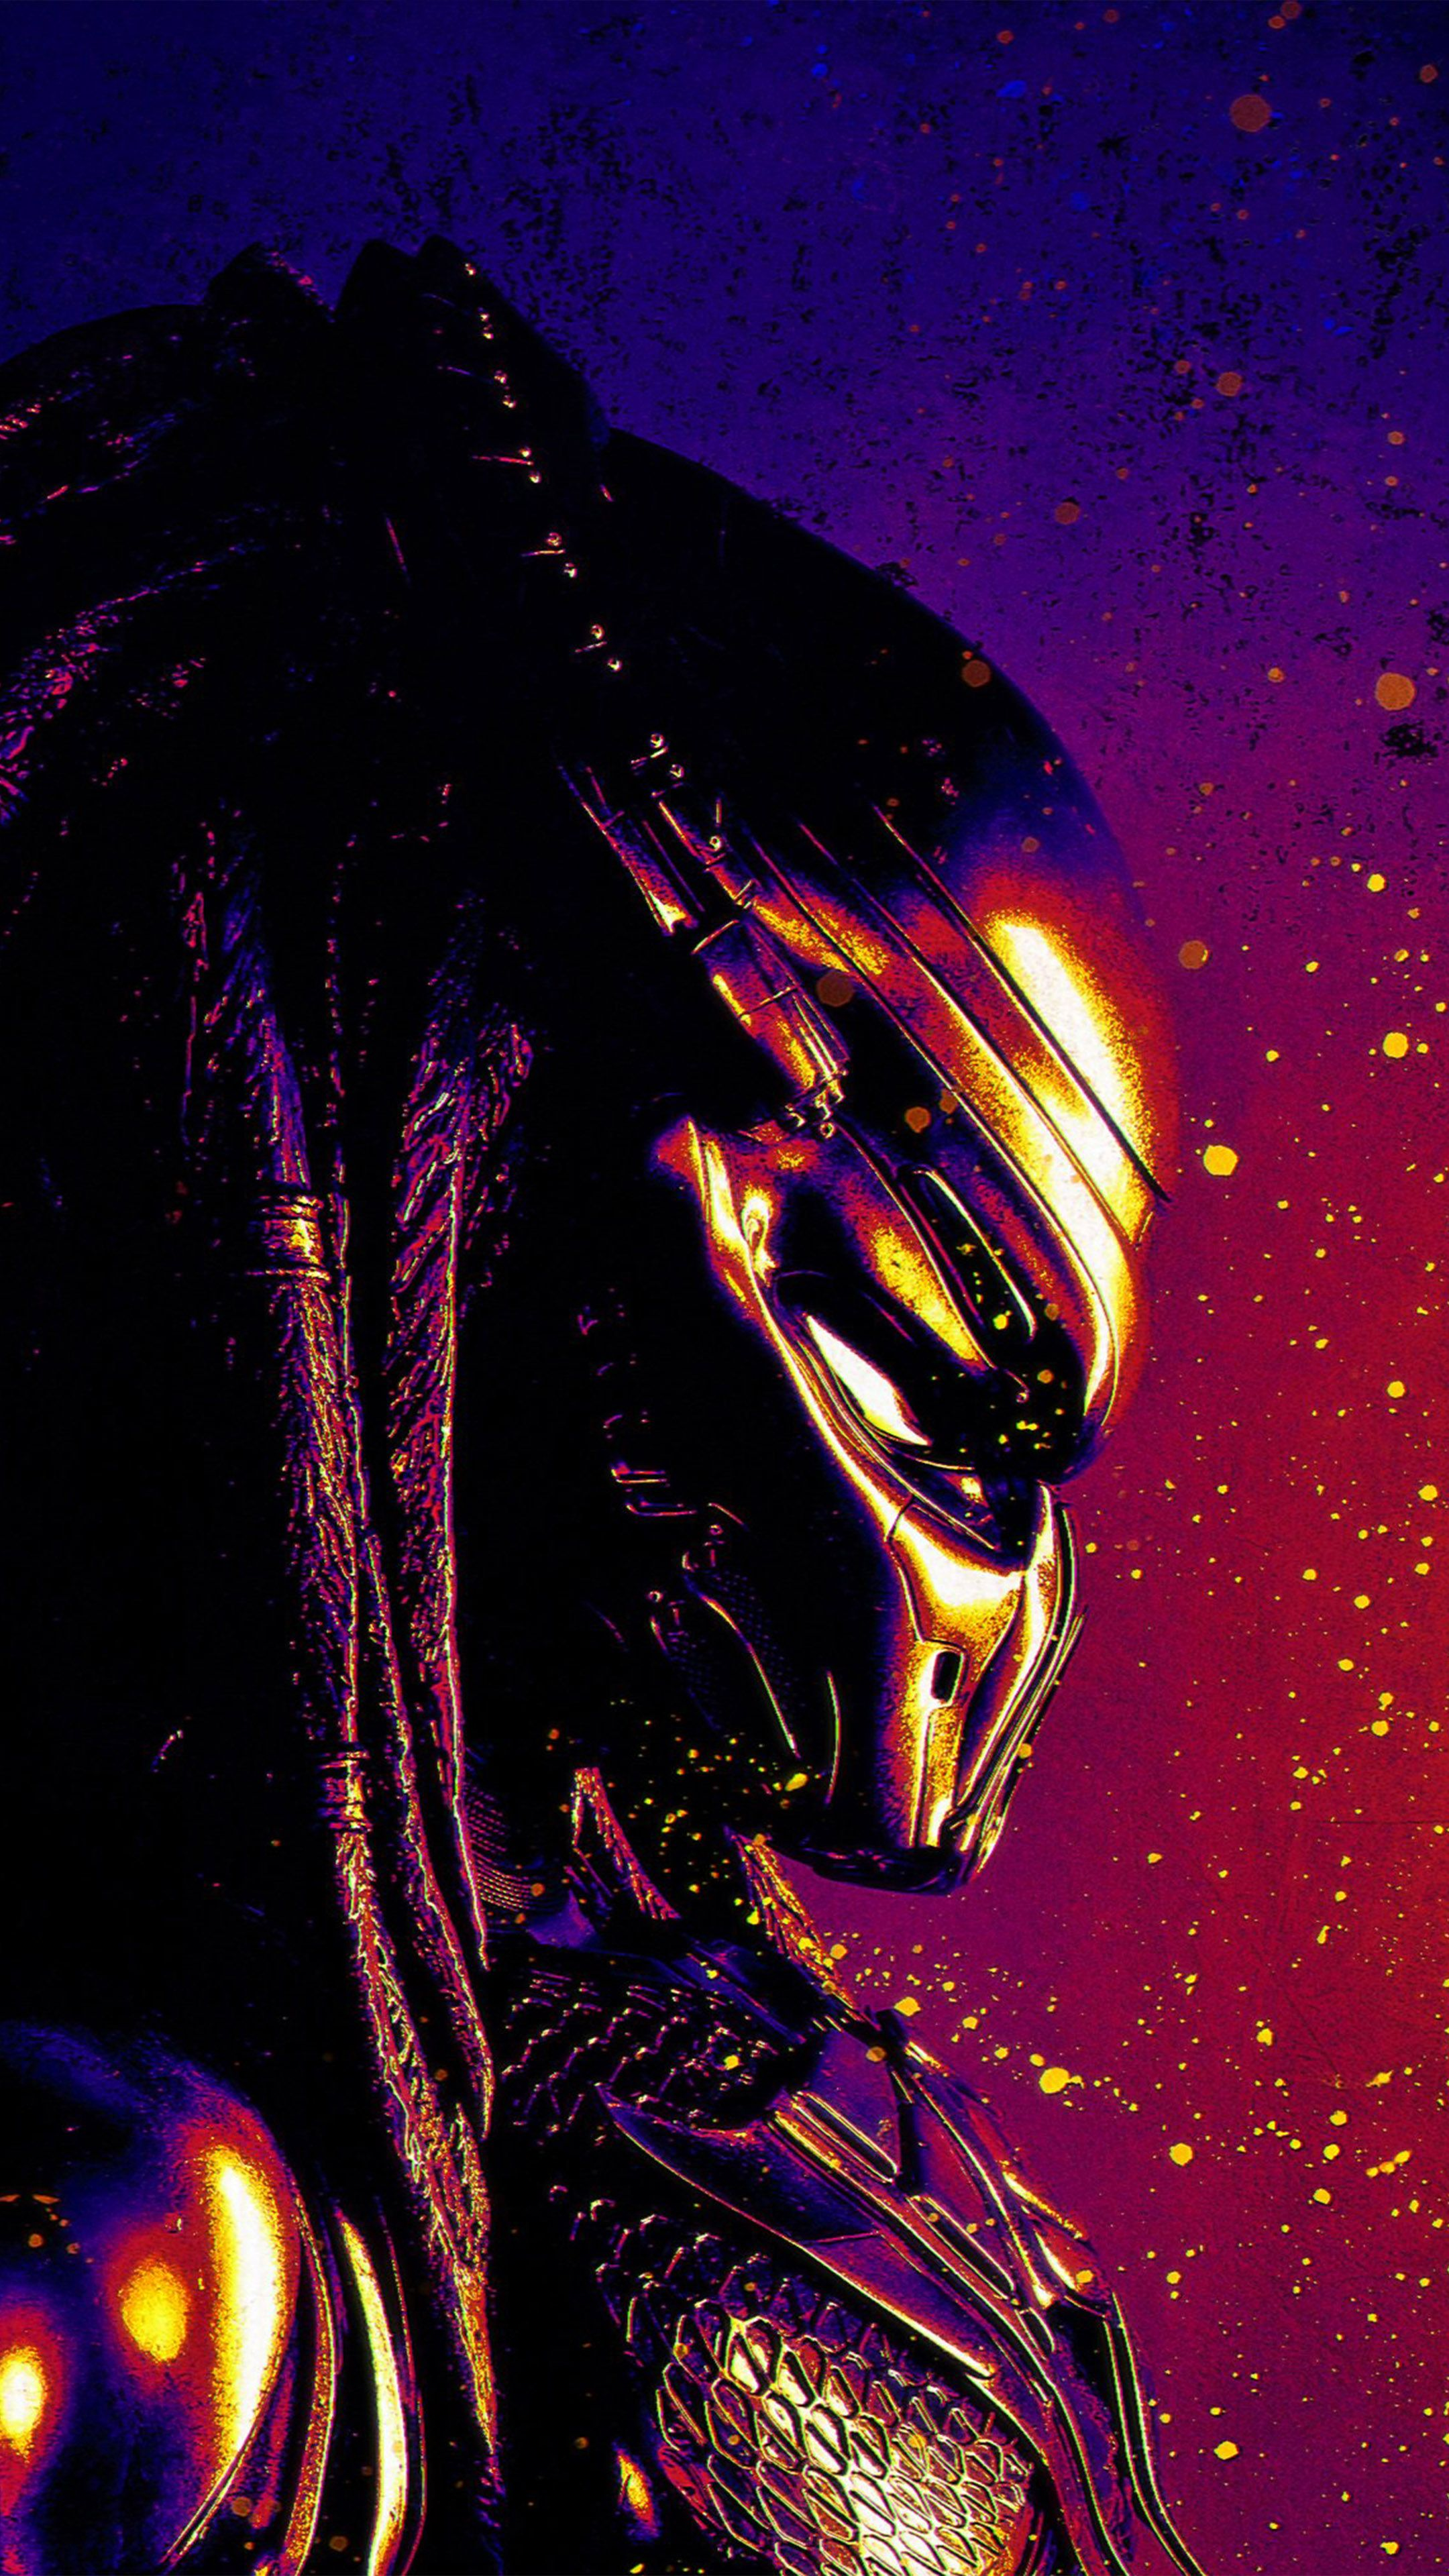 Predator 2018 Artwork Cool Wallpapers 4k Predator Artwork Wallpapers For Mobile Phones